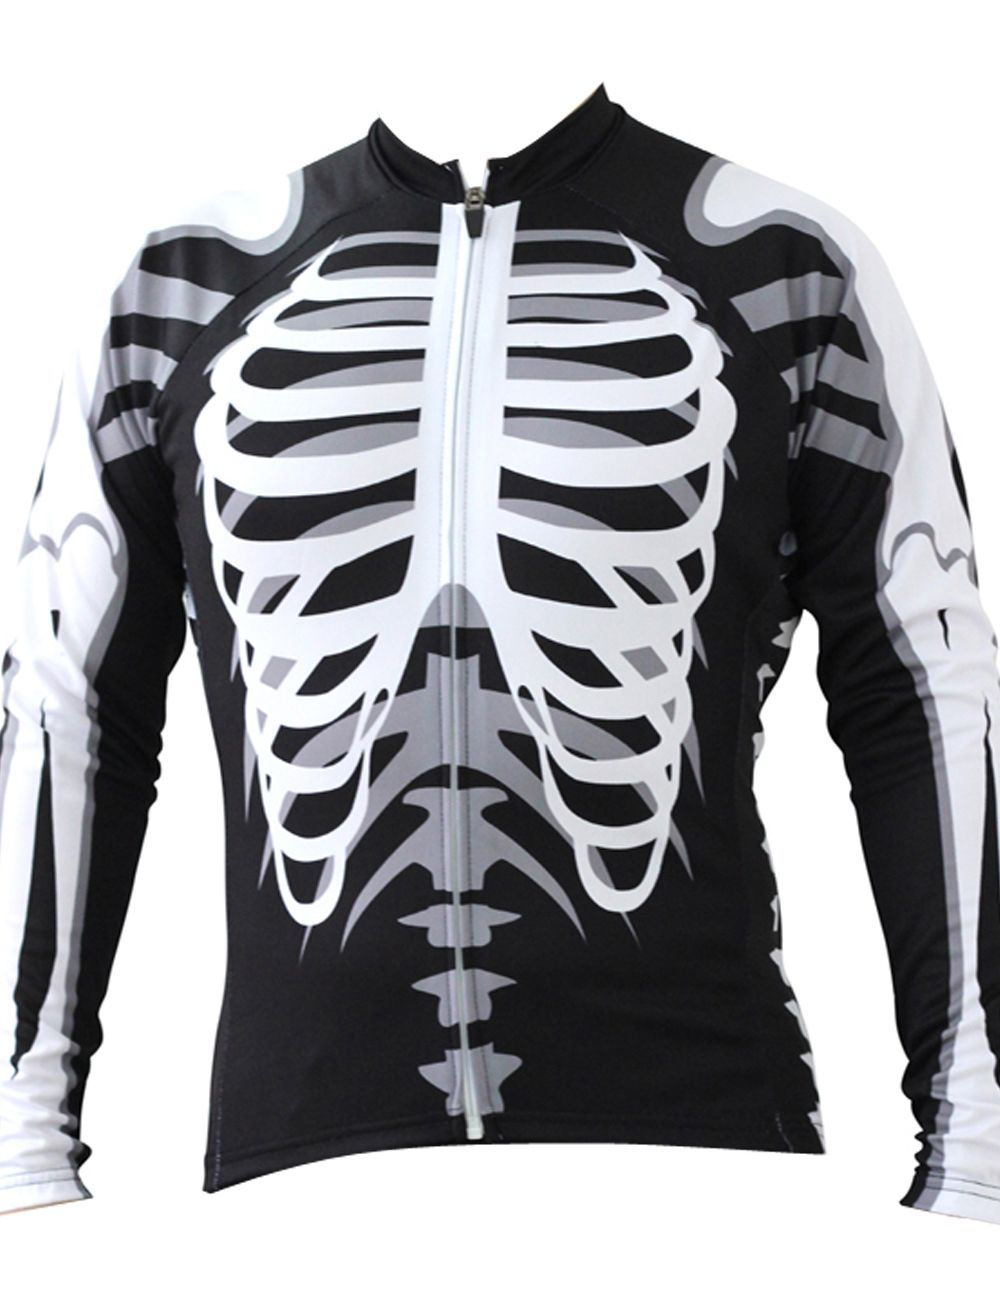 Skeleton Alien SportsWear Mens Long Sleeve Cycling Jersey Cycling Clothing  Bike Shirt Size 2XS To 6XL-in Cycling Jerseys from Sports   Entertainment  on ... 96df30d63